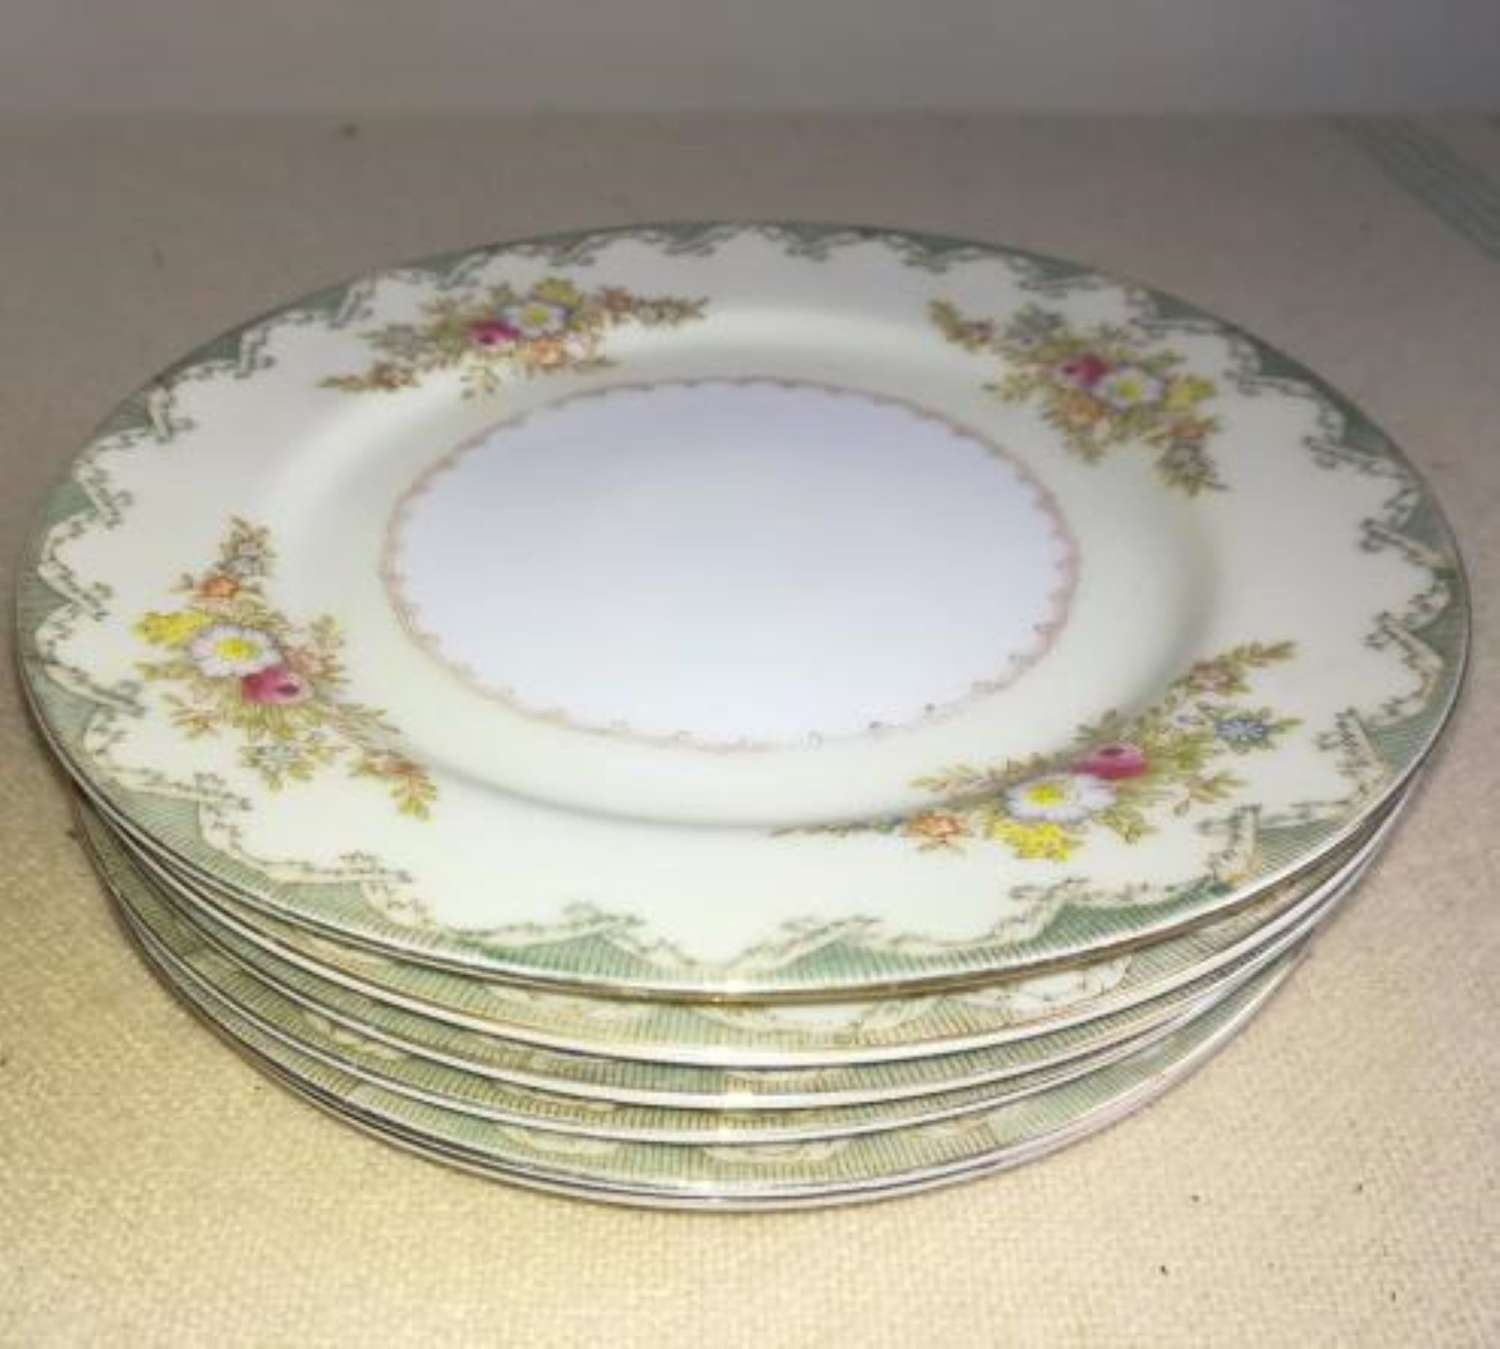 Set of 6 China Plates 'Occupied Japan' Made